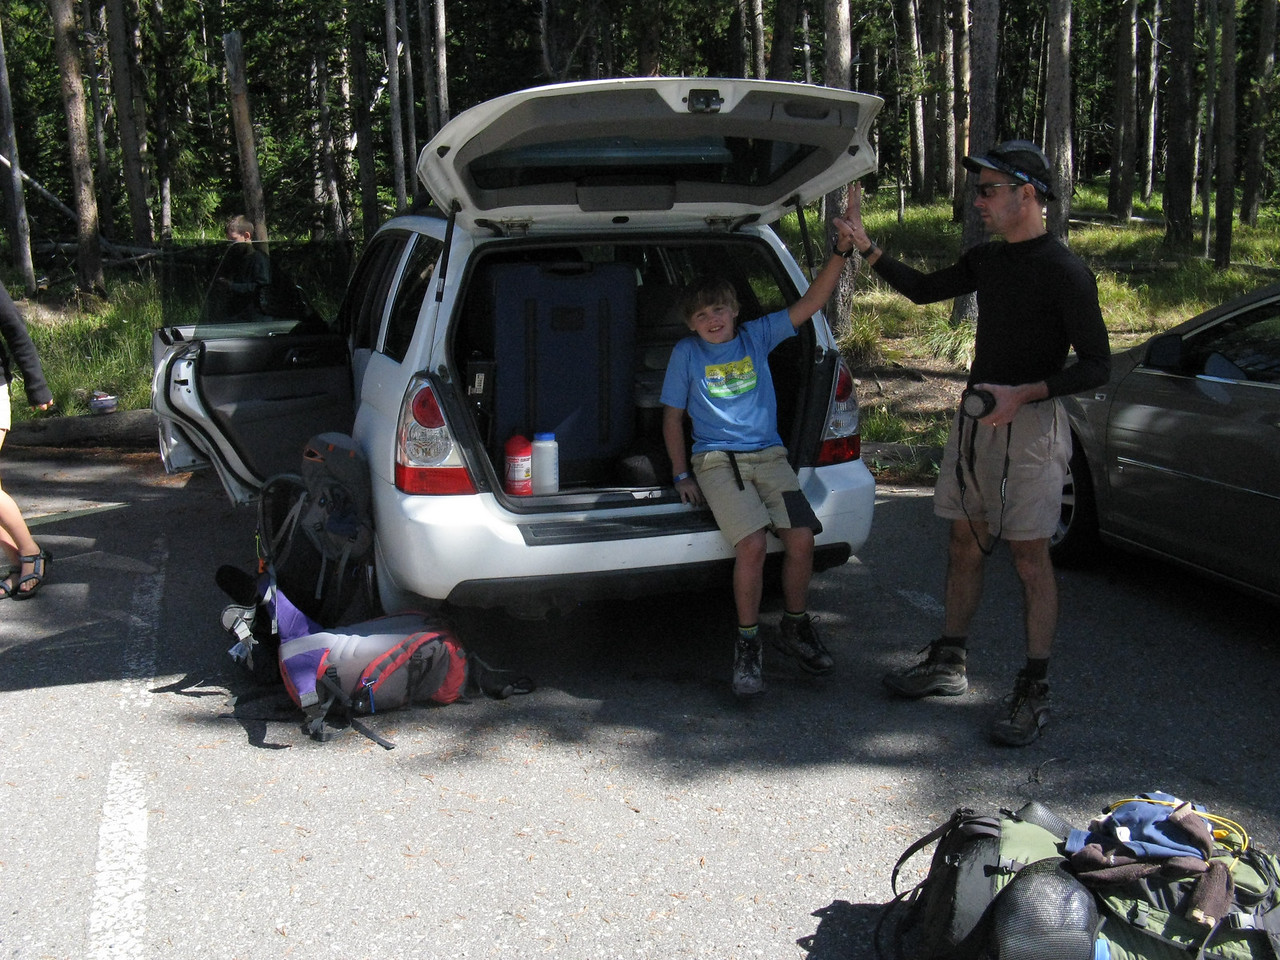 There is a God - the car gleefully re-claimed about 3:30. This was Zach's first backpack - the only youth we saw in the backcountry. .. When the chips are down, you want Zach on your team!